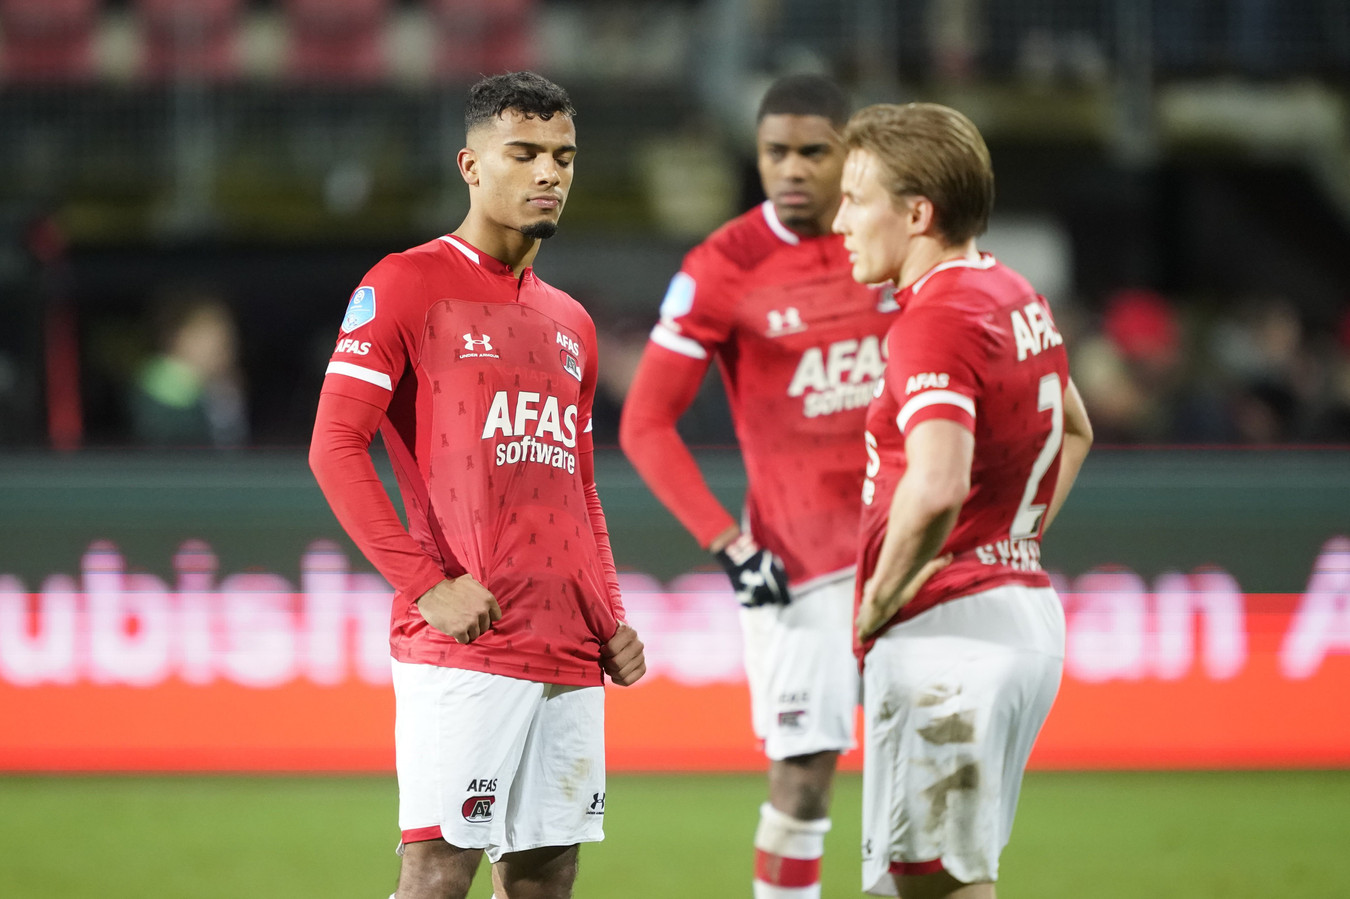 2020-01-18 22:42:46 (L-R) Owen Wijndal of AZ, Myron Boadu of AZ, Jonas Svensson of AZ during the Dutch Eredivisie match between AZ Alkmaar and Willem II Tilburg at AFAS stadium on January 18, 2020 in Alkmaar, The Netherlands ANP SPORT